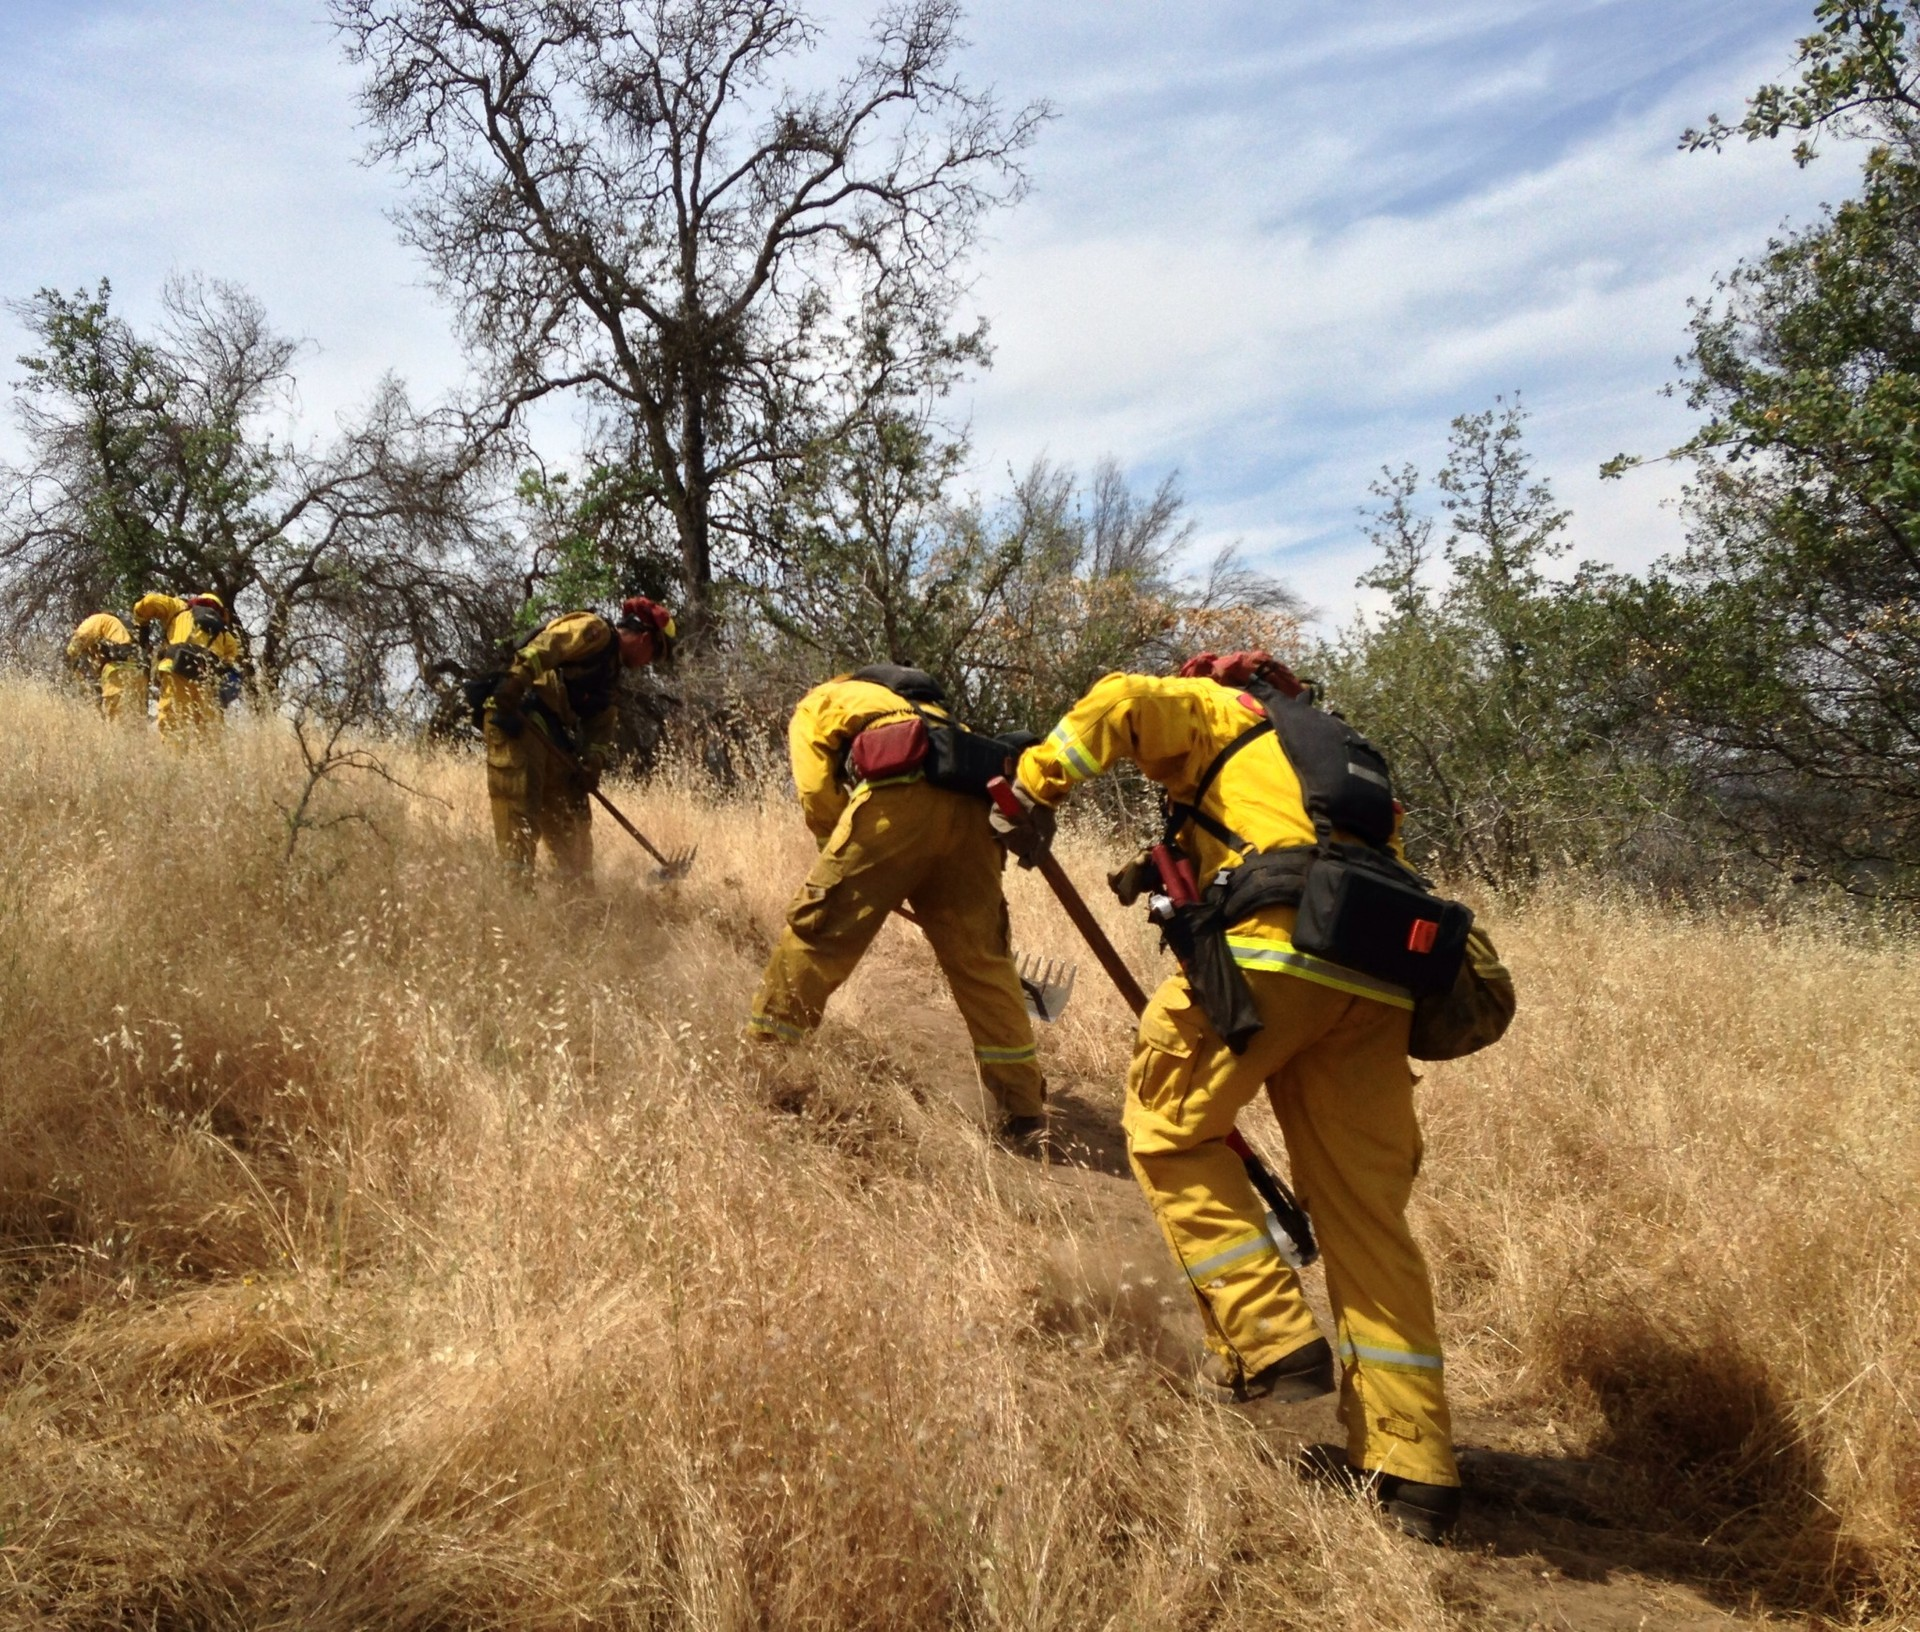 Crews clear a fire break in the Sierra foothills, in preparation for this summer's fire season.